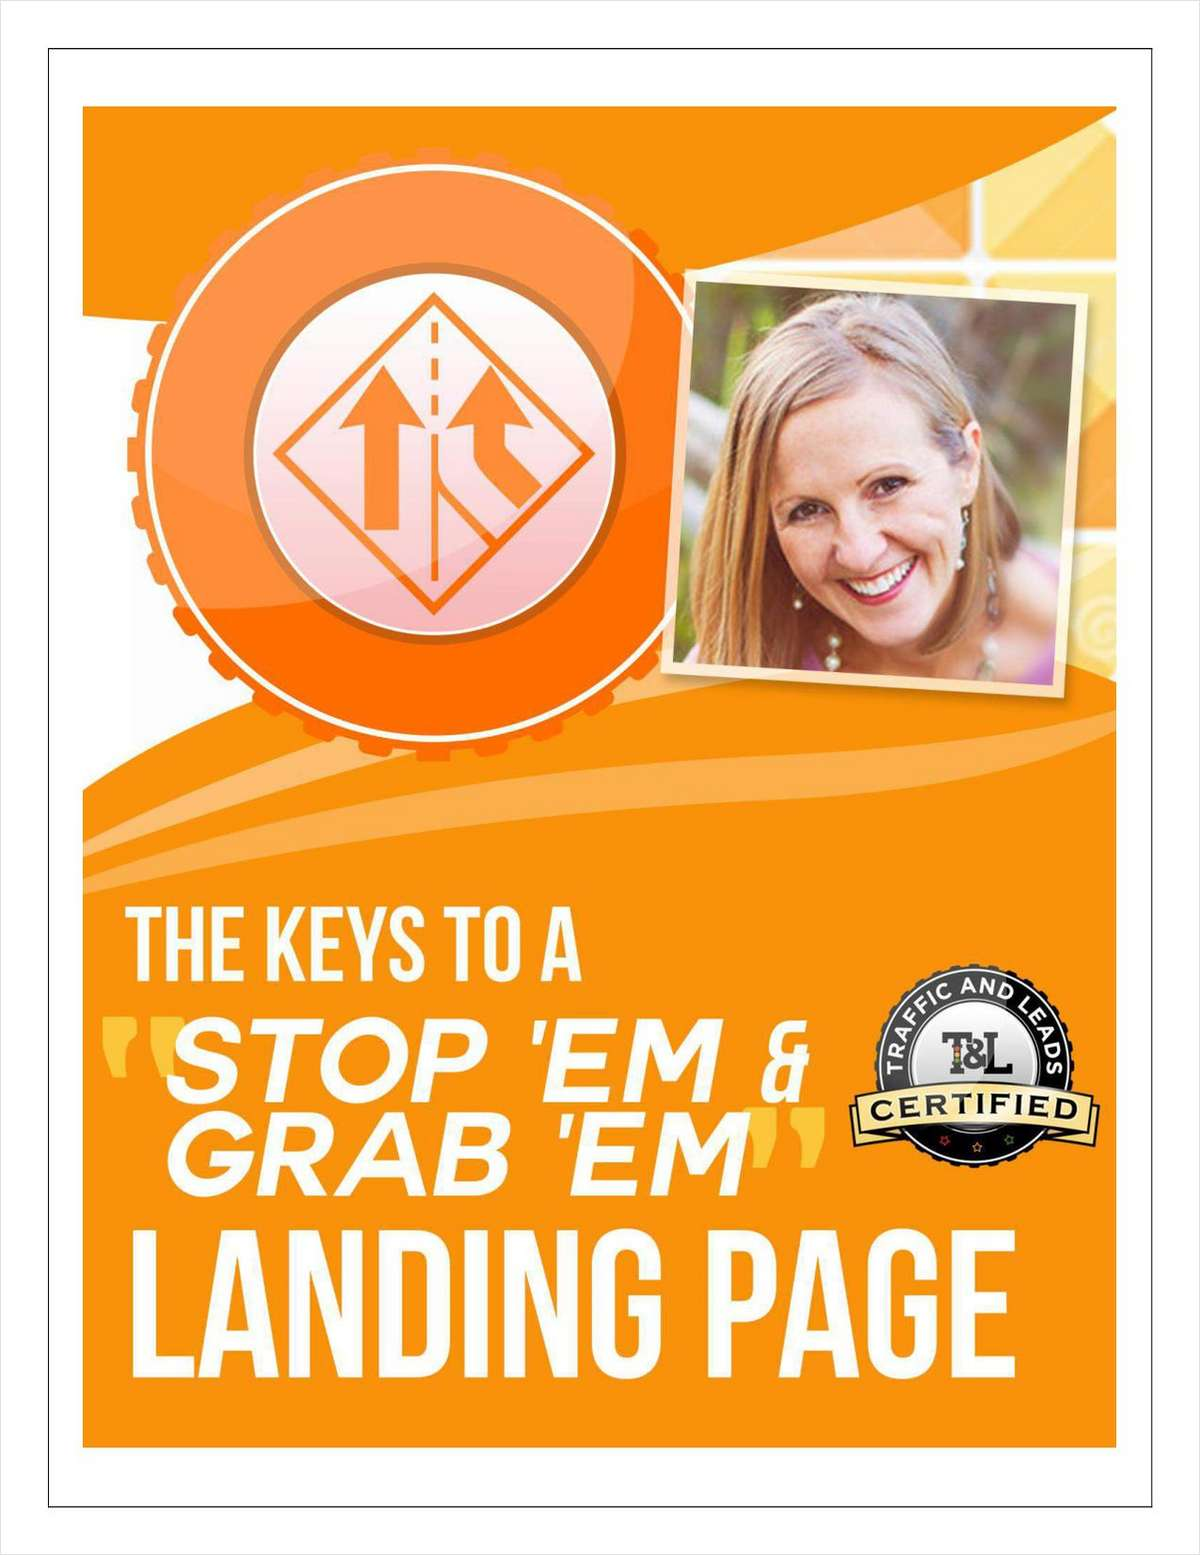 The Keys to a 'Stop 'em & Grab 'em' Landing Page